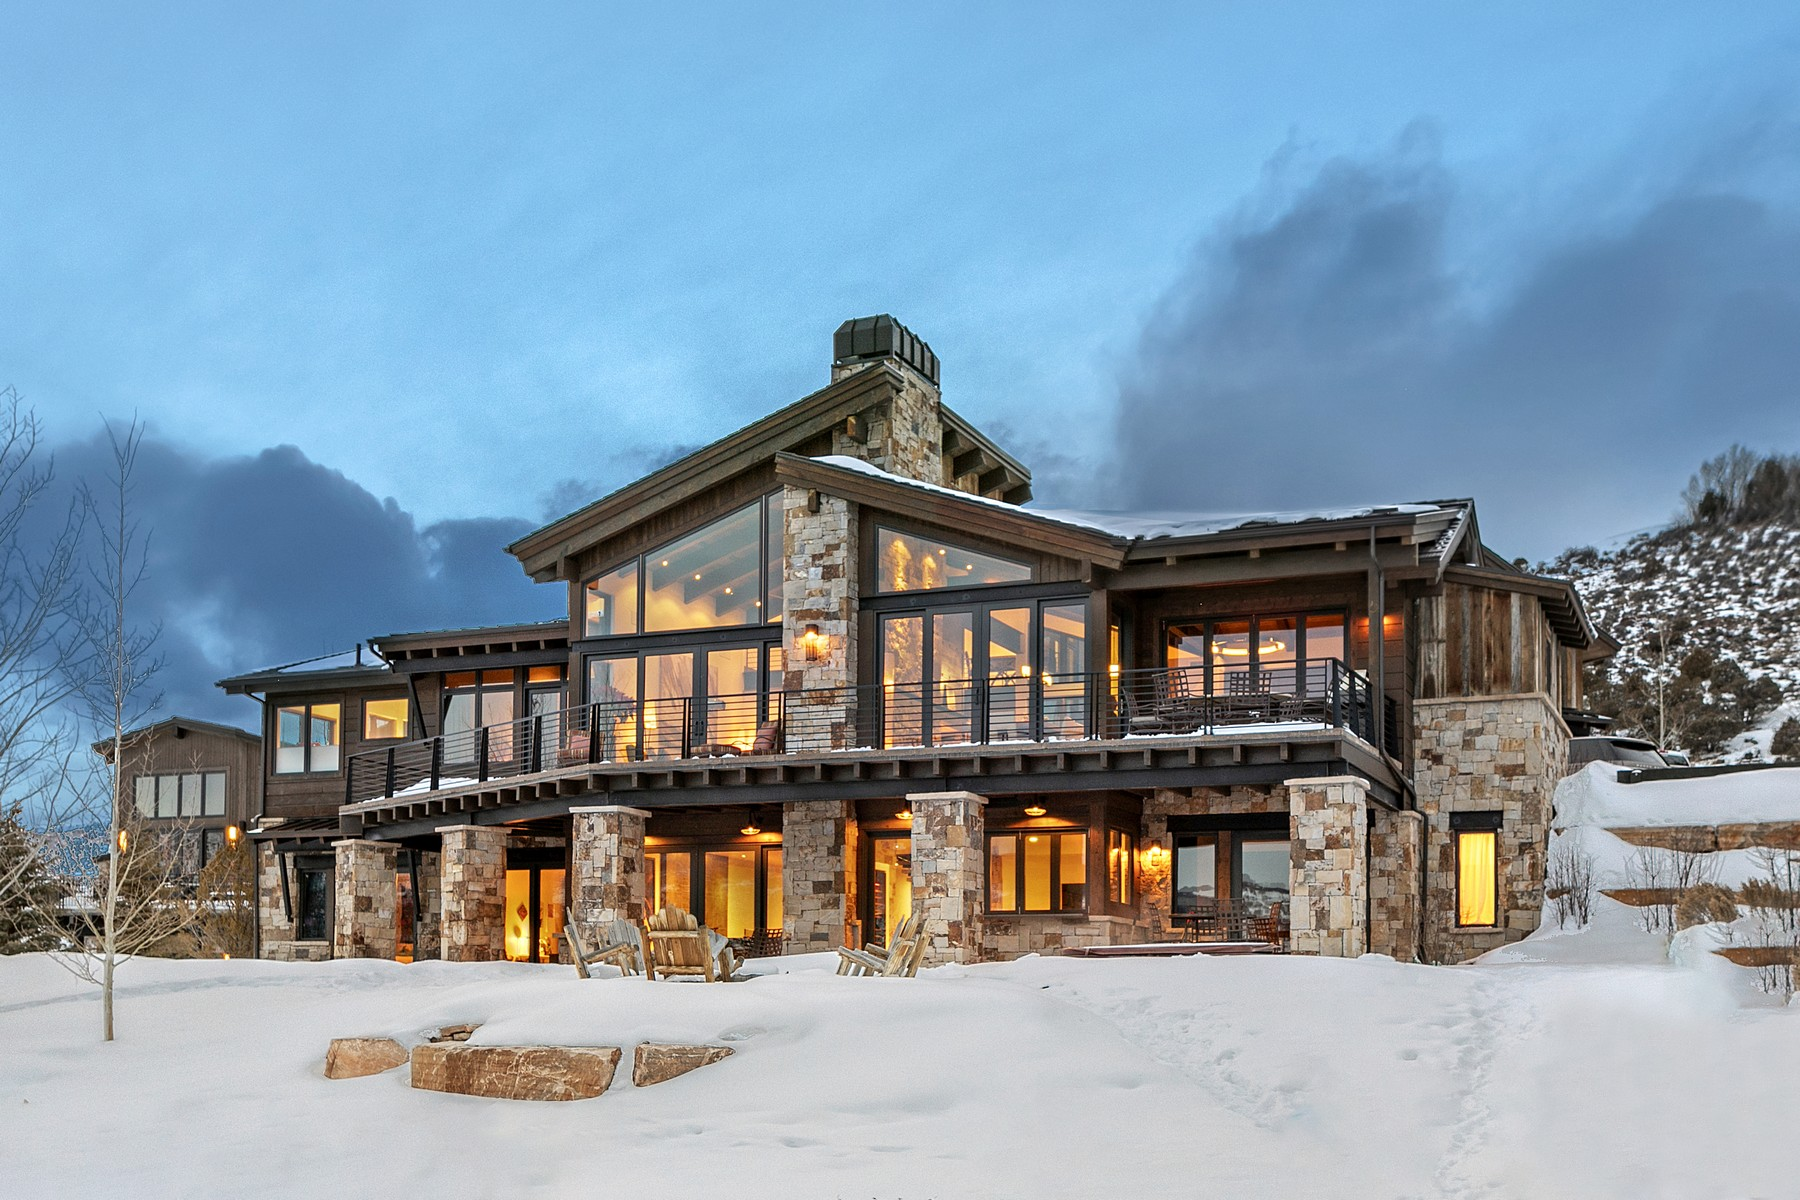 Single Family Homes for Sale at Stunning mountain contemporary residence 1800 Beard Creek Edwards, Colorado 81632 United States